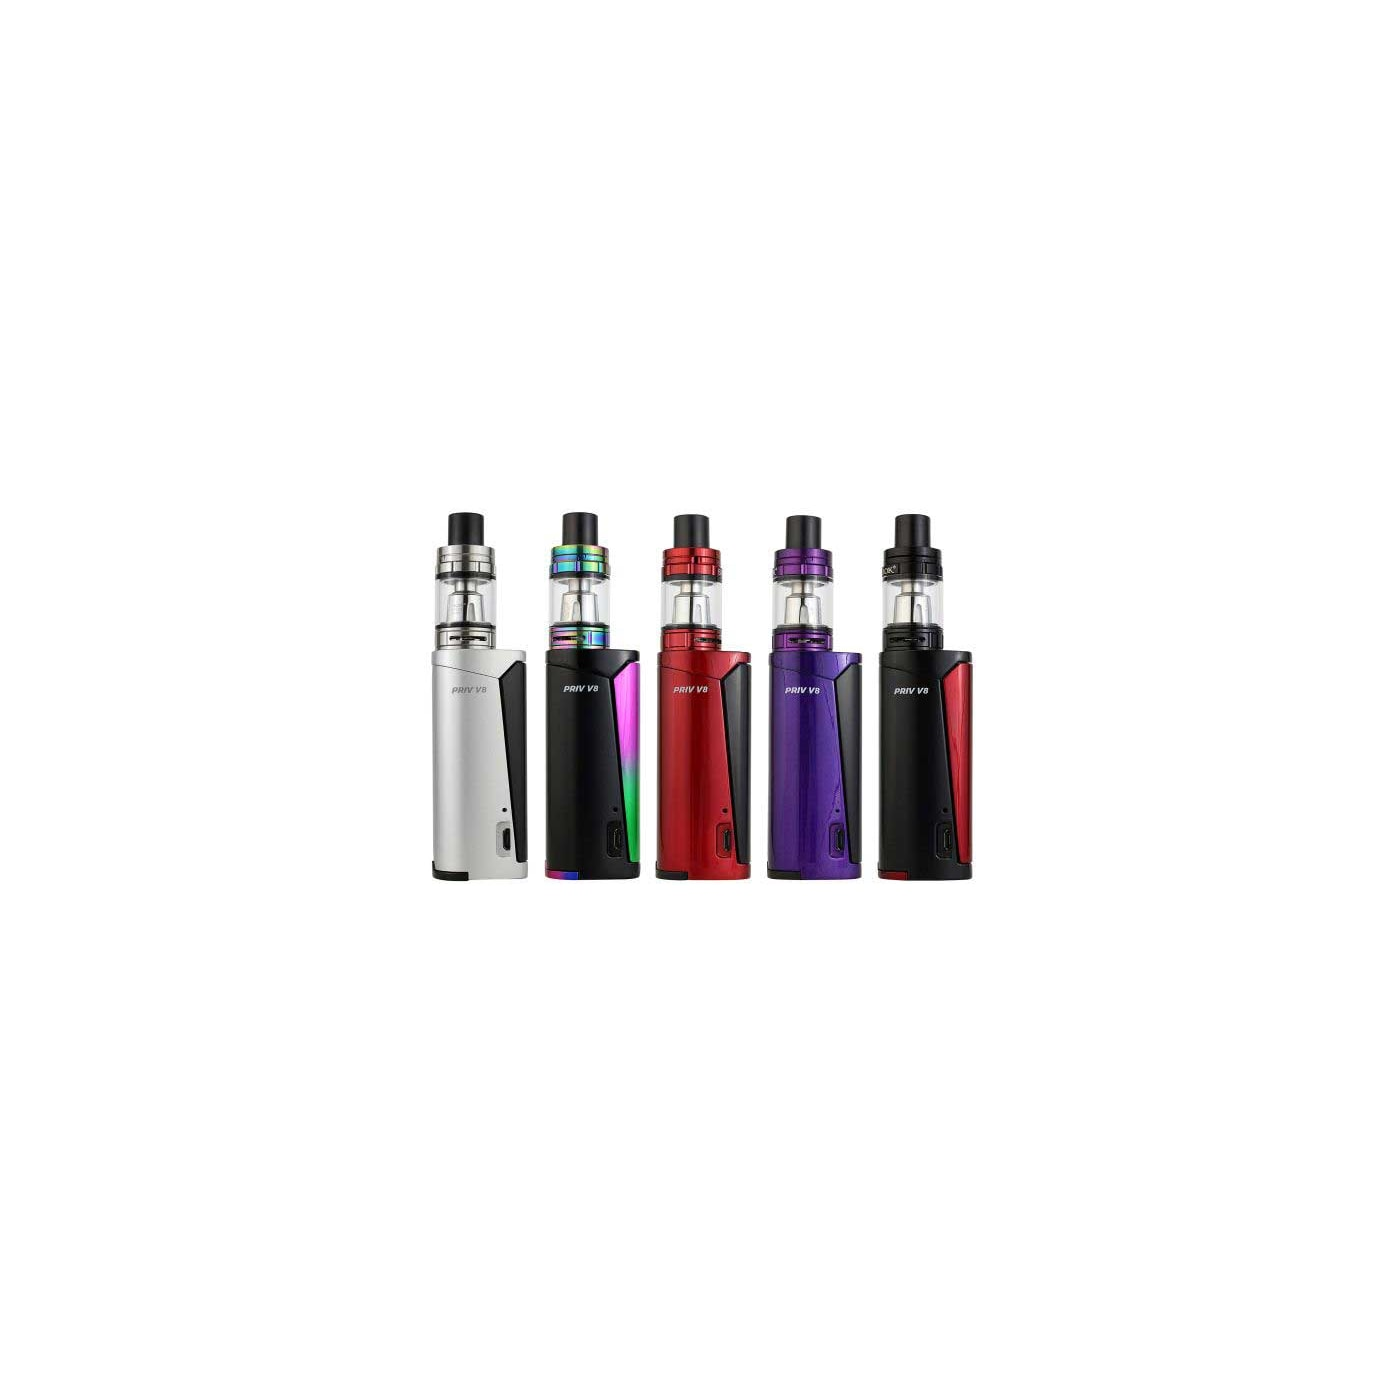 SMOK Prive V8 Starter Kit Colors